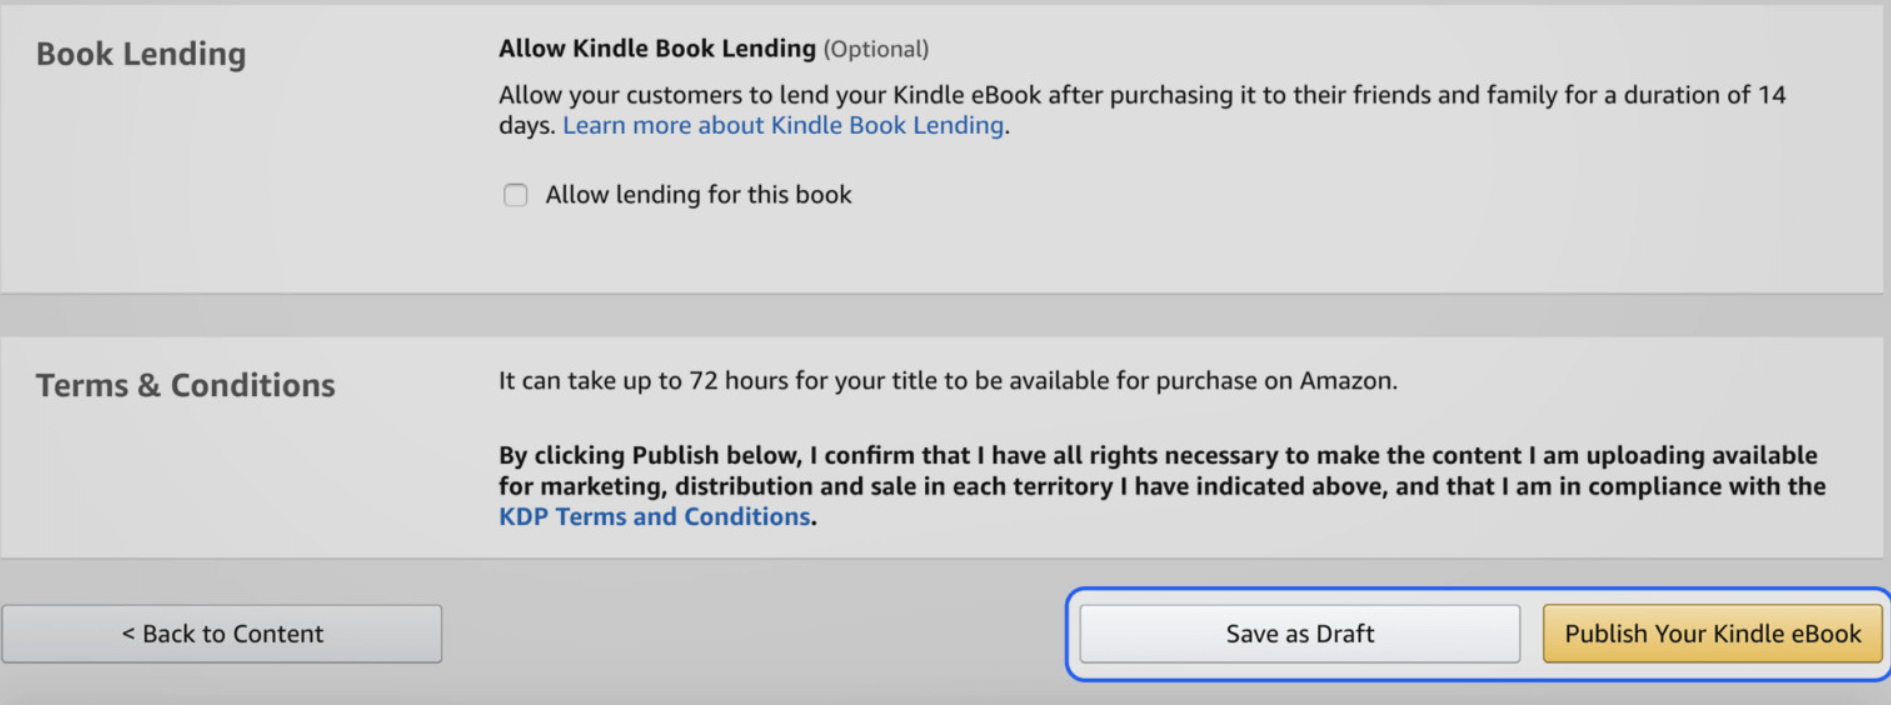 How To Self-Publish And Market Your Book On Amazon: Step By Step Guide